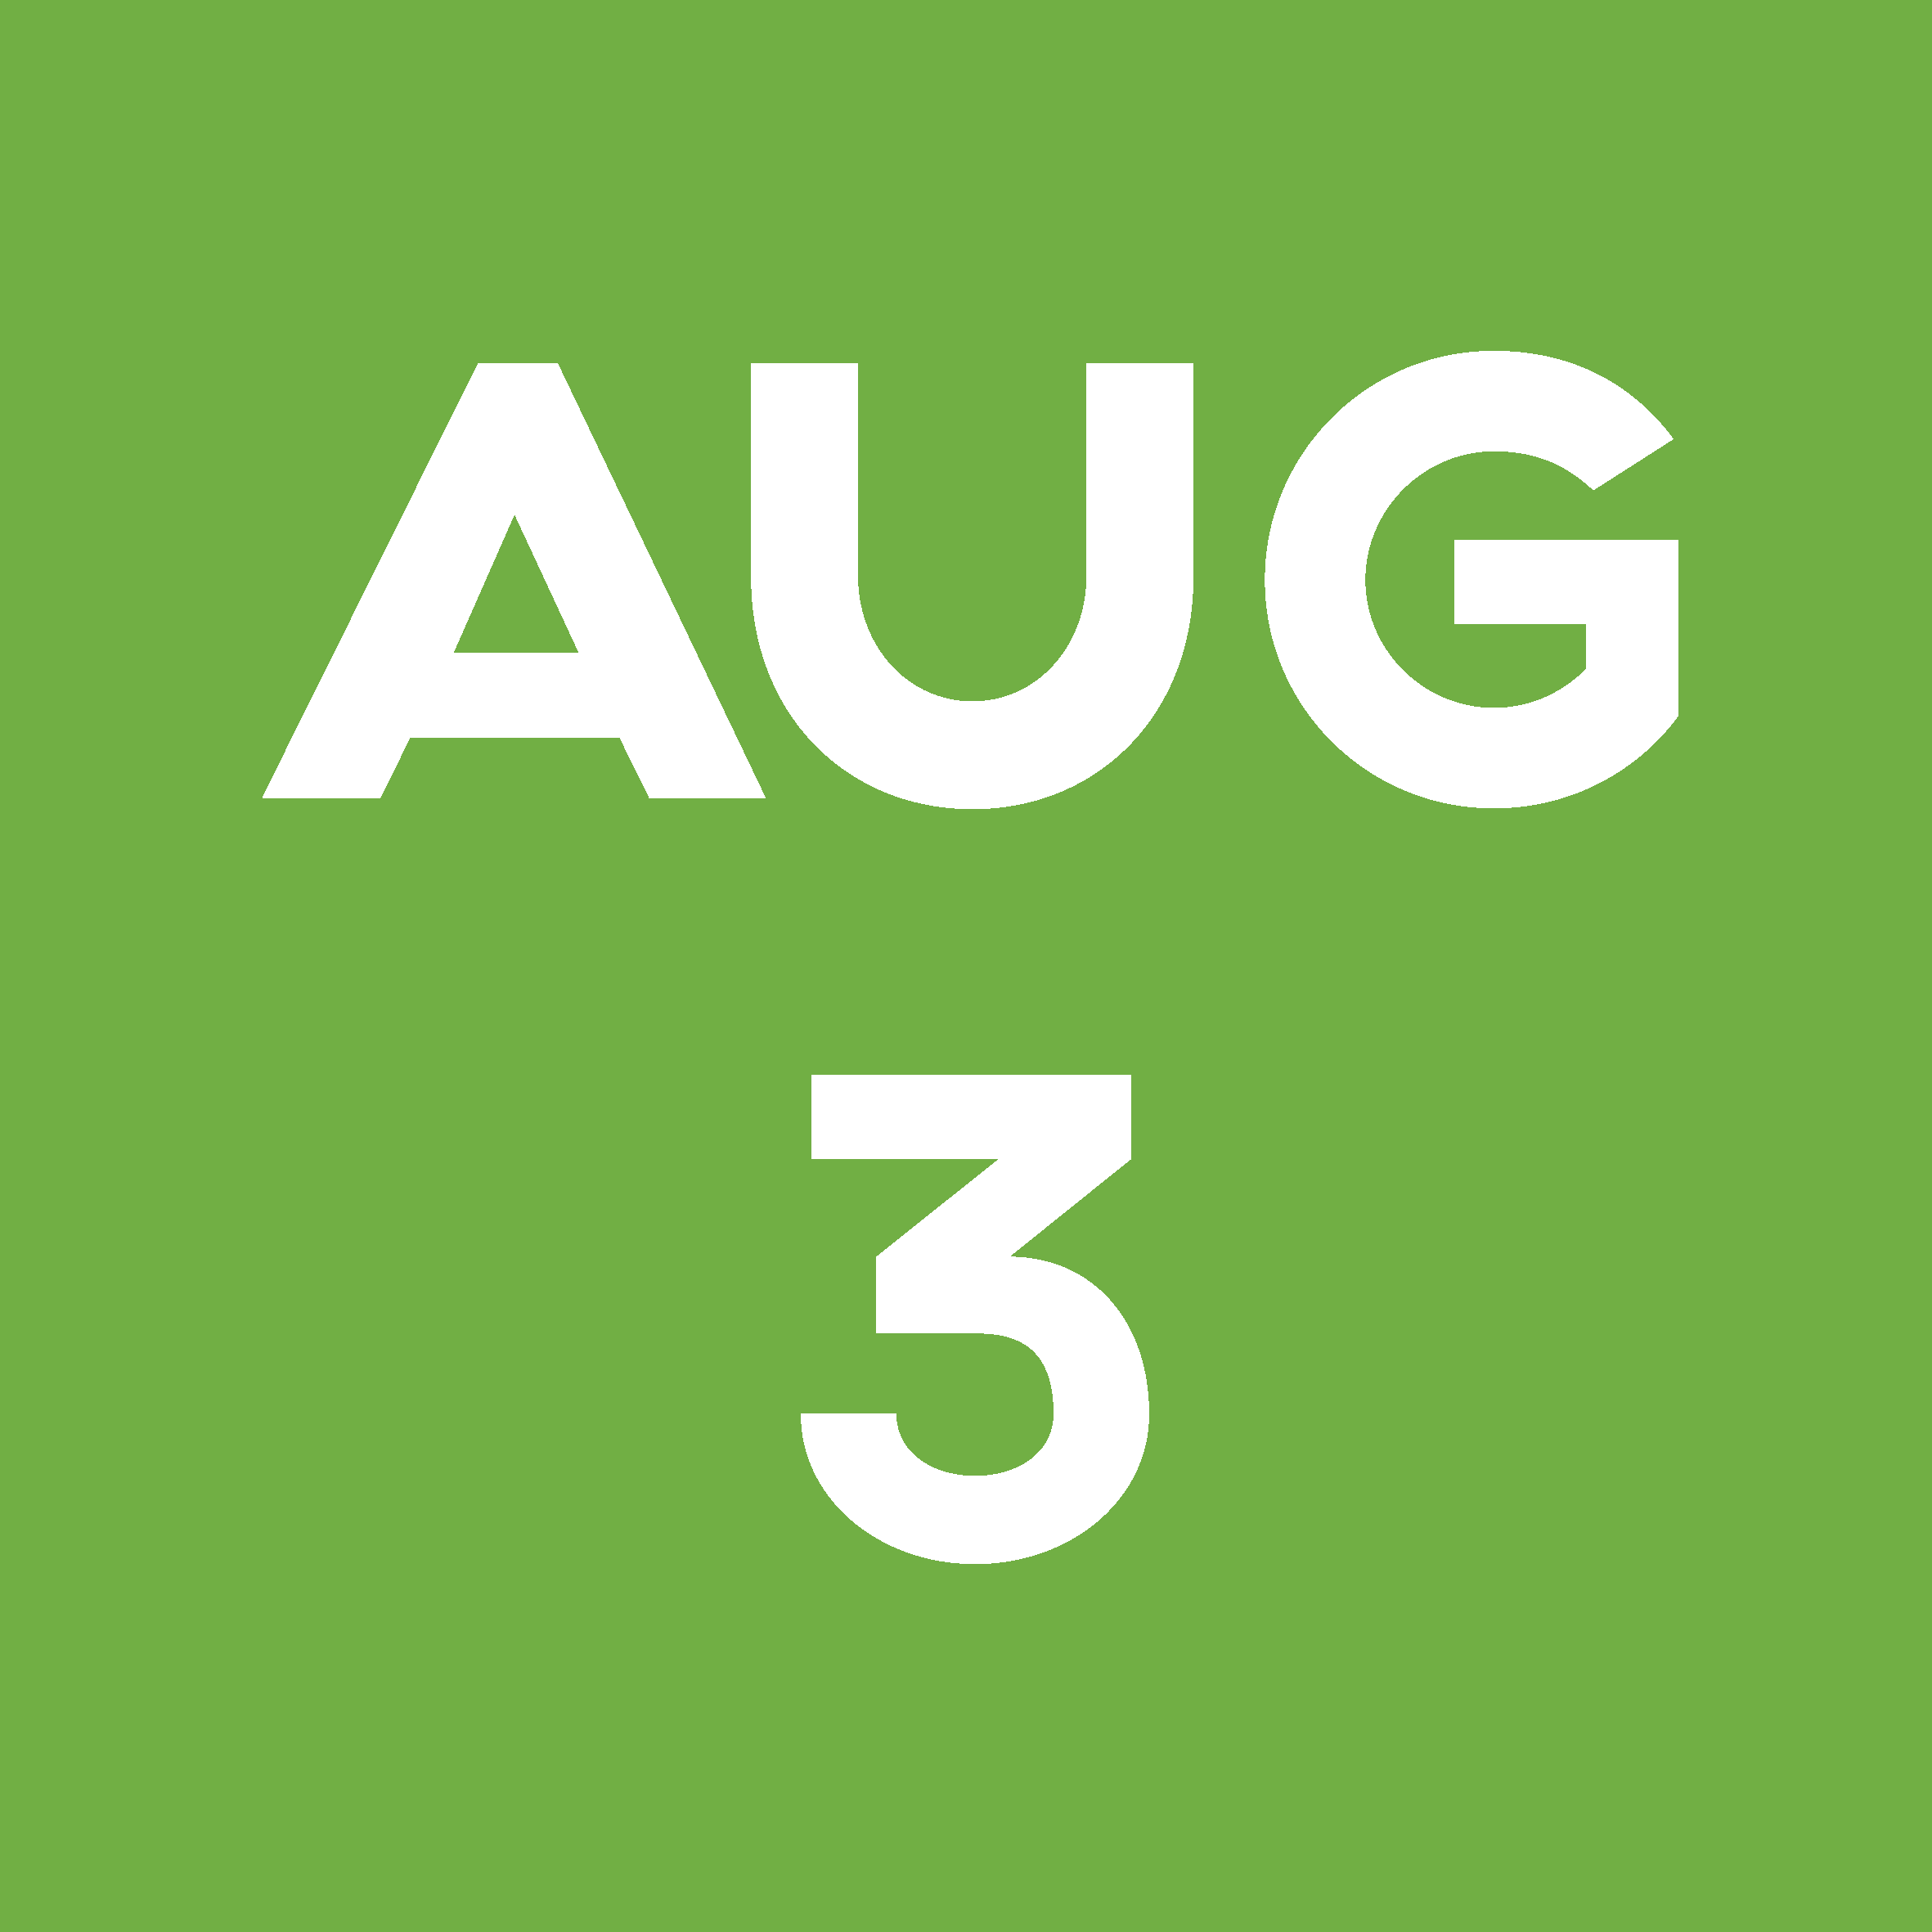 Date Block August 3rd